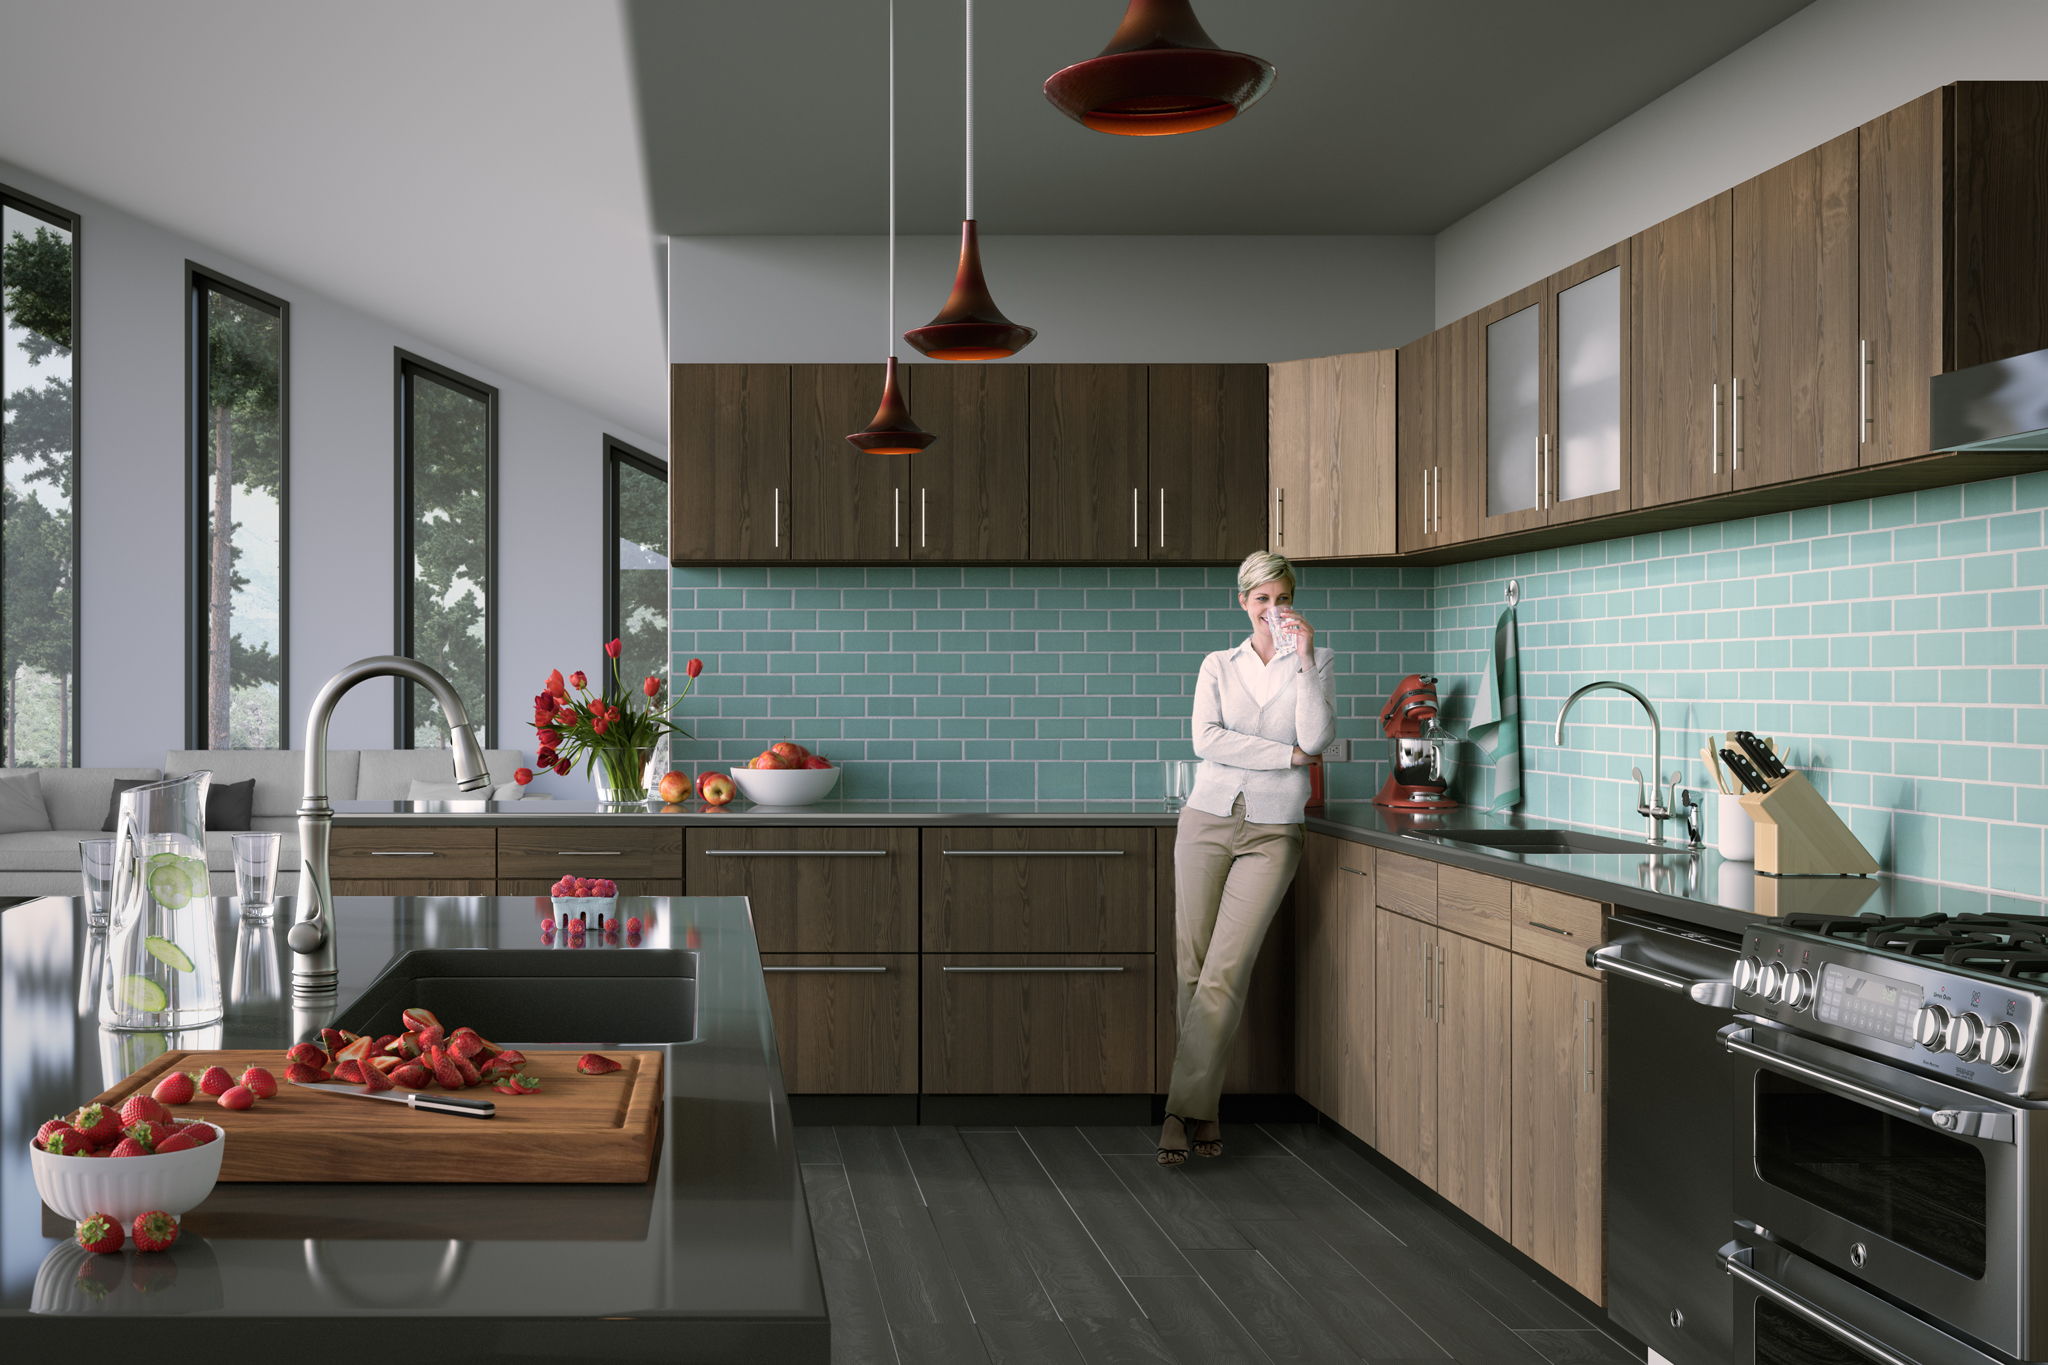 3d rendering of a kitchen with strawberries